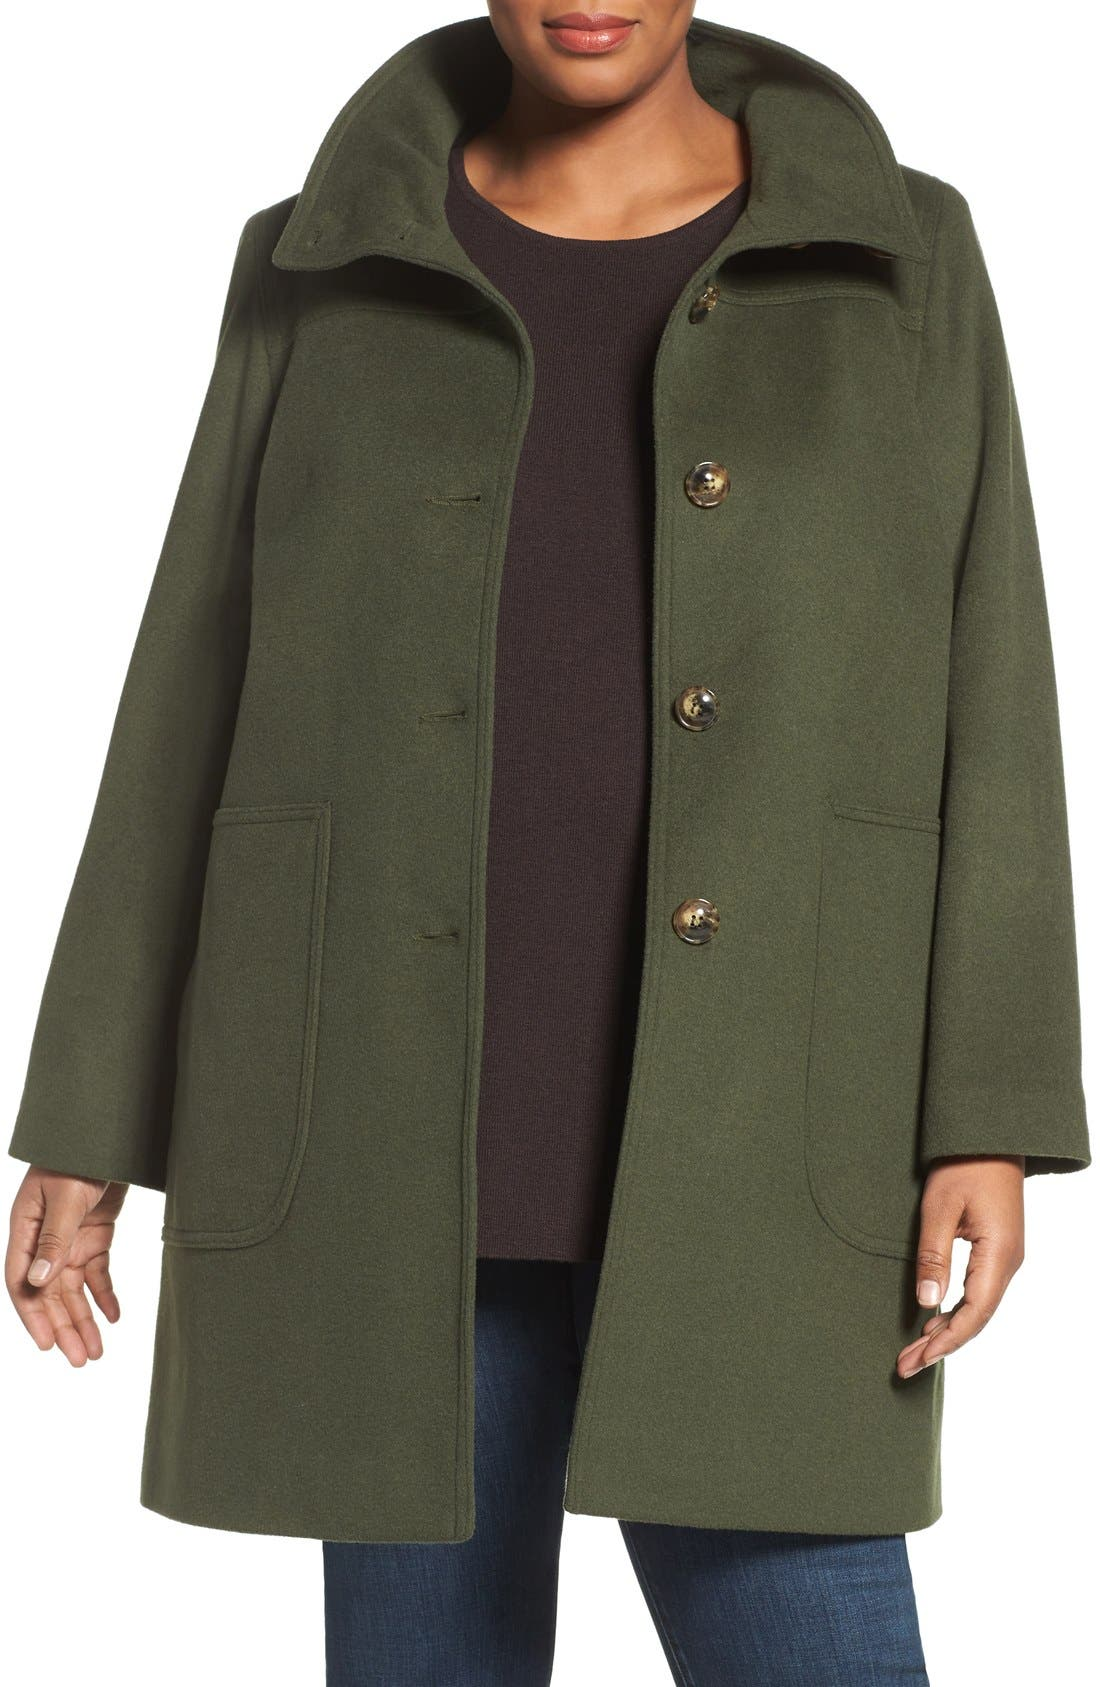 Alternate Image 1 Selected - Kristen Blake Patch Pocket Wool Blend Topcoat (Plus Size)